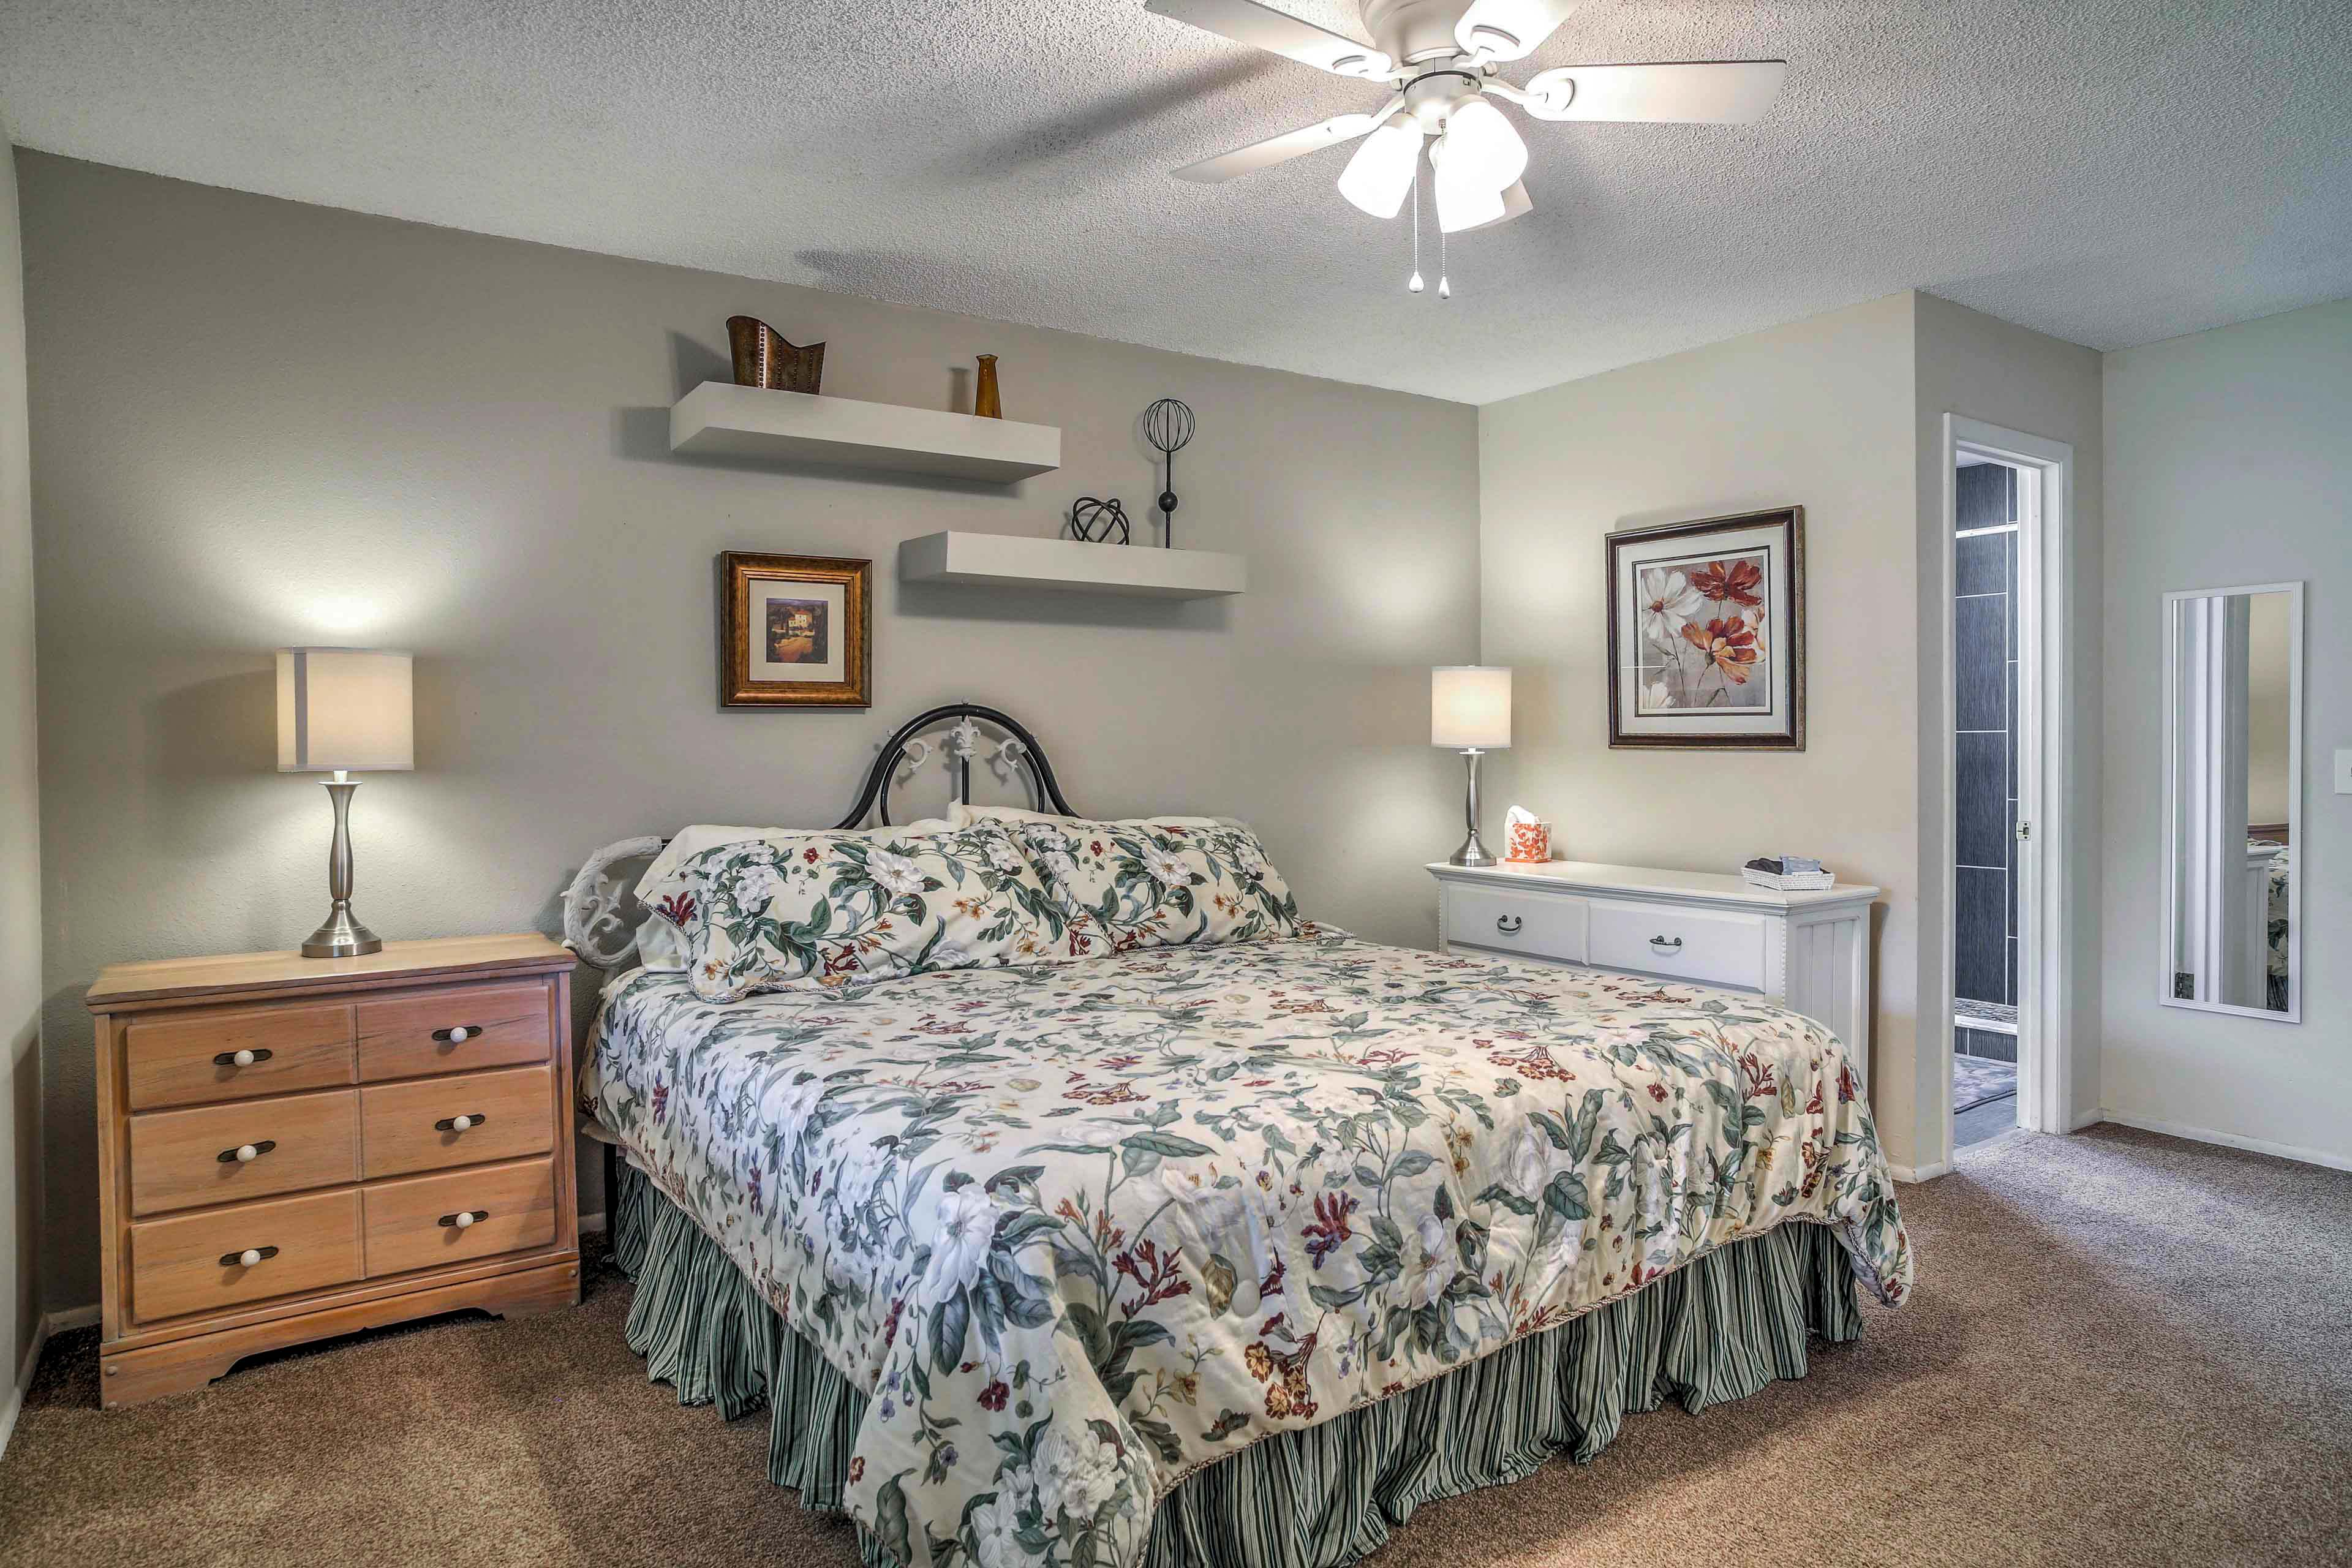 The master bedroom features a cozy king bed and bathroom.